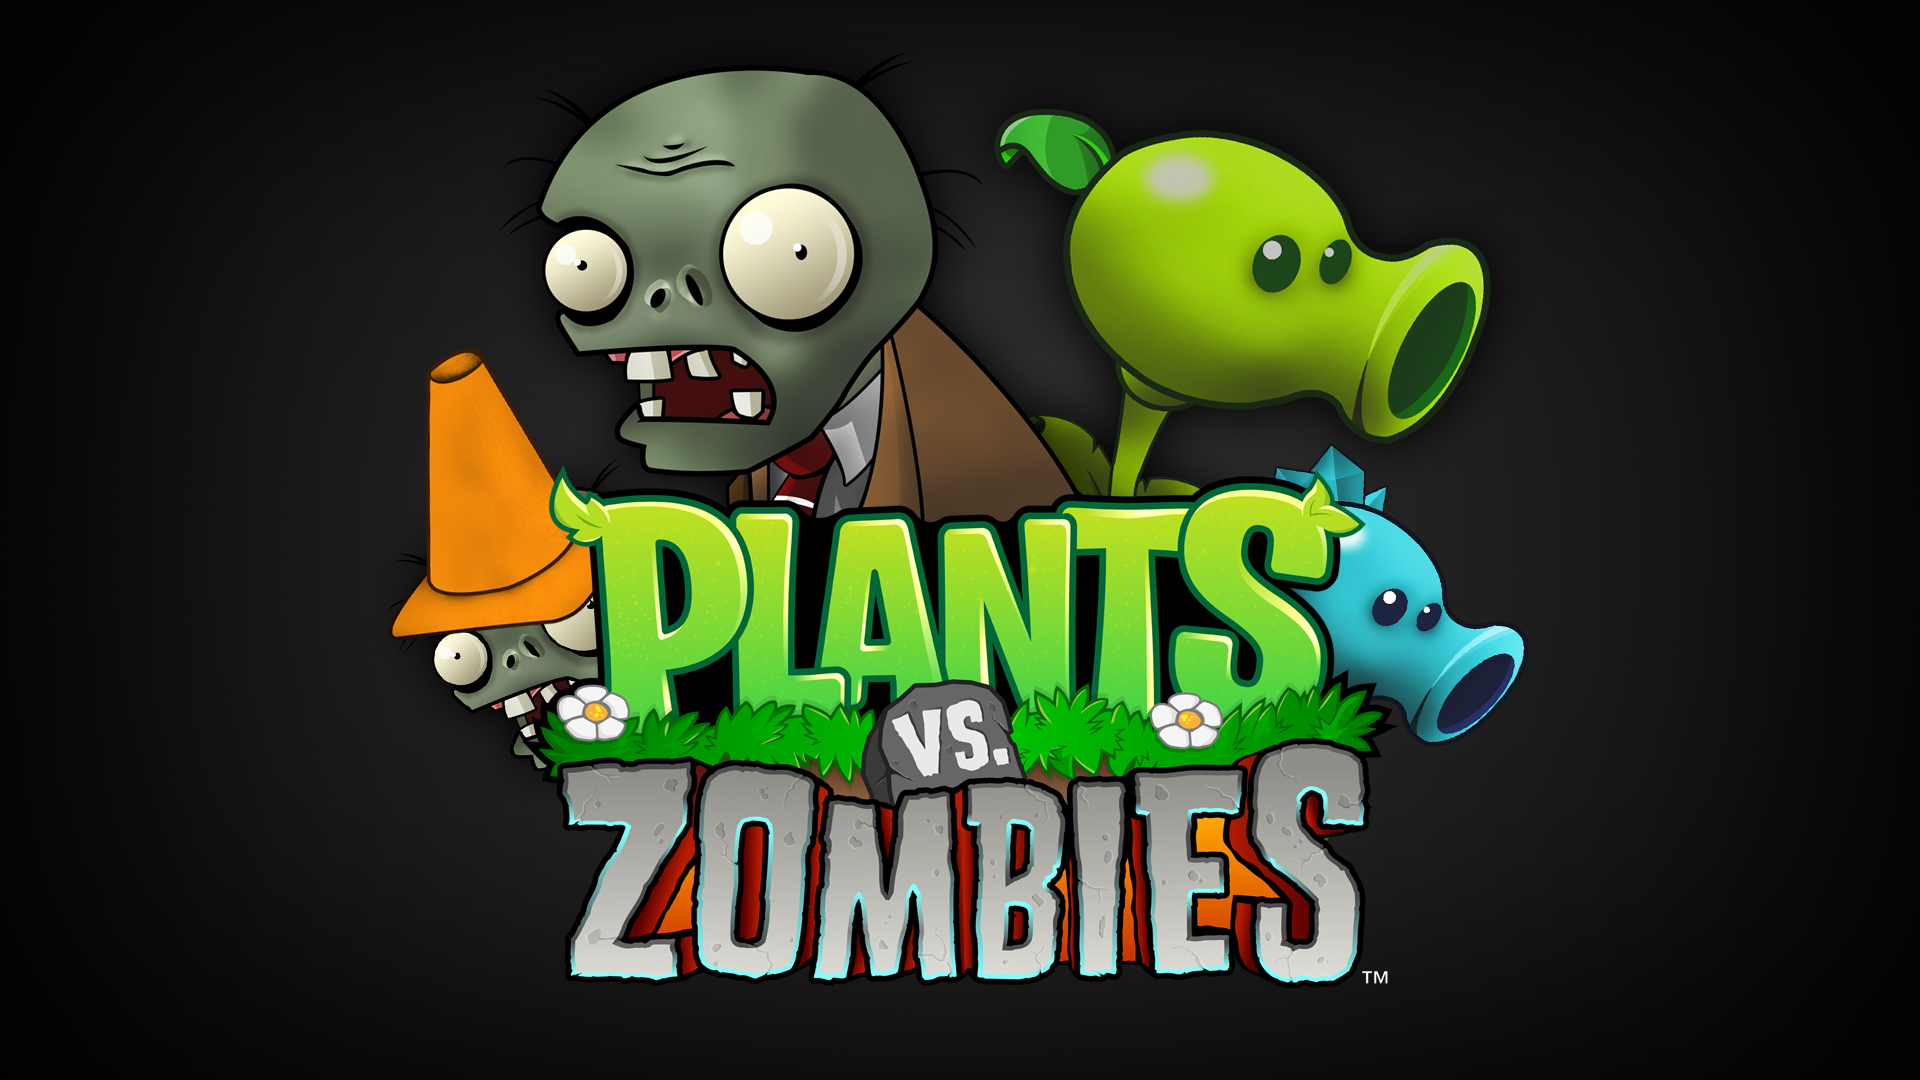 plants vs. zombies full hd wallpaper and background image